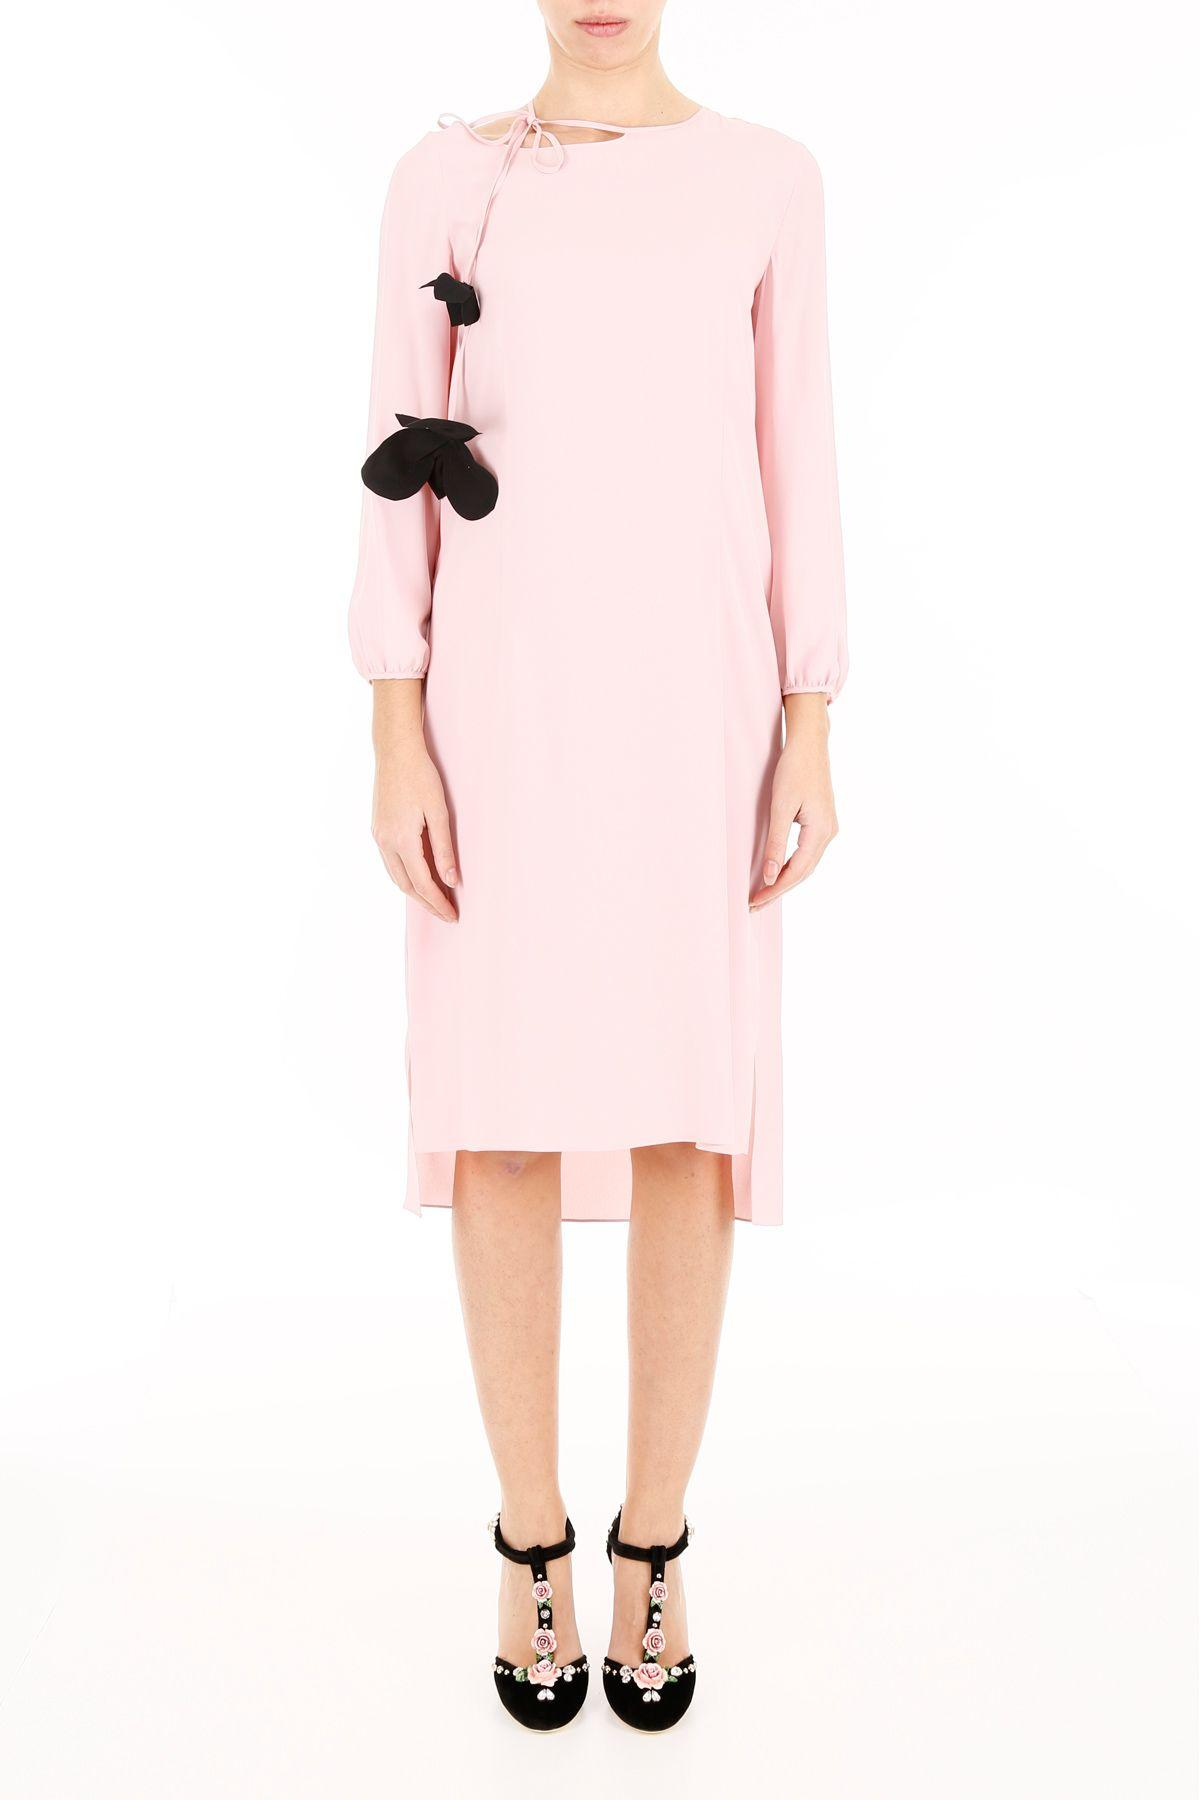 Marni Silk Dress With Flower In Cinder Rose (Pink)